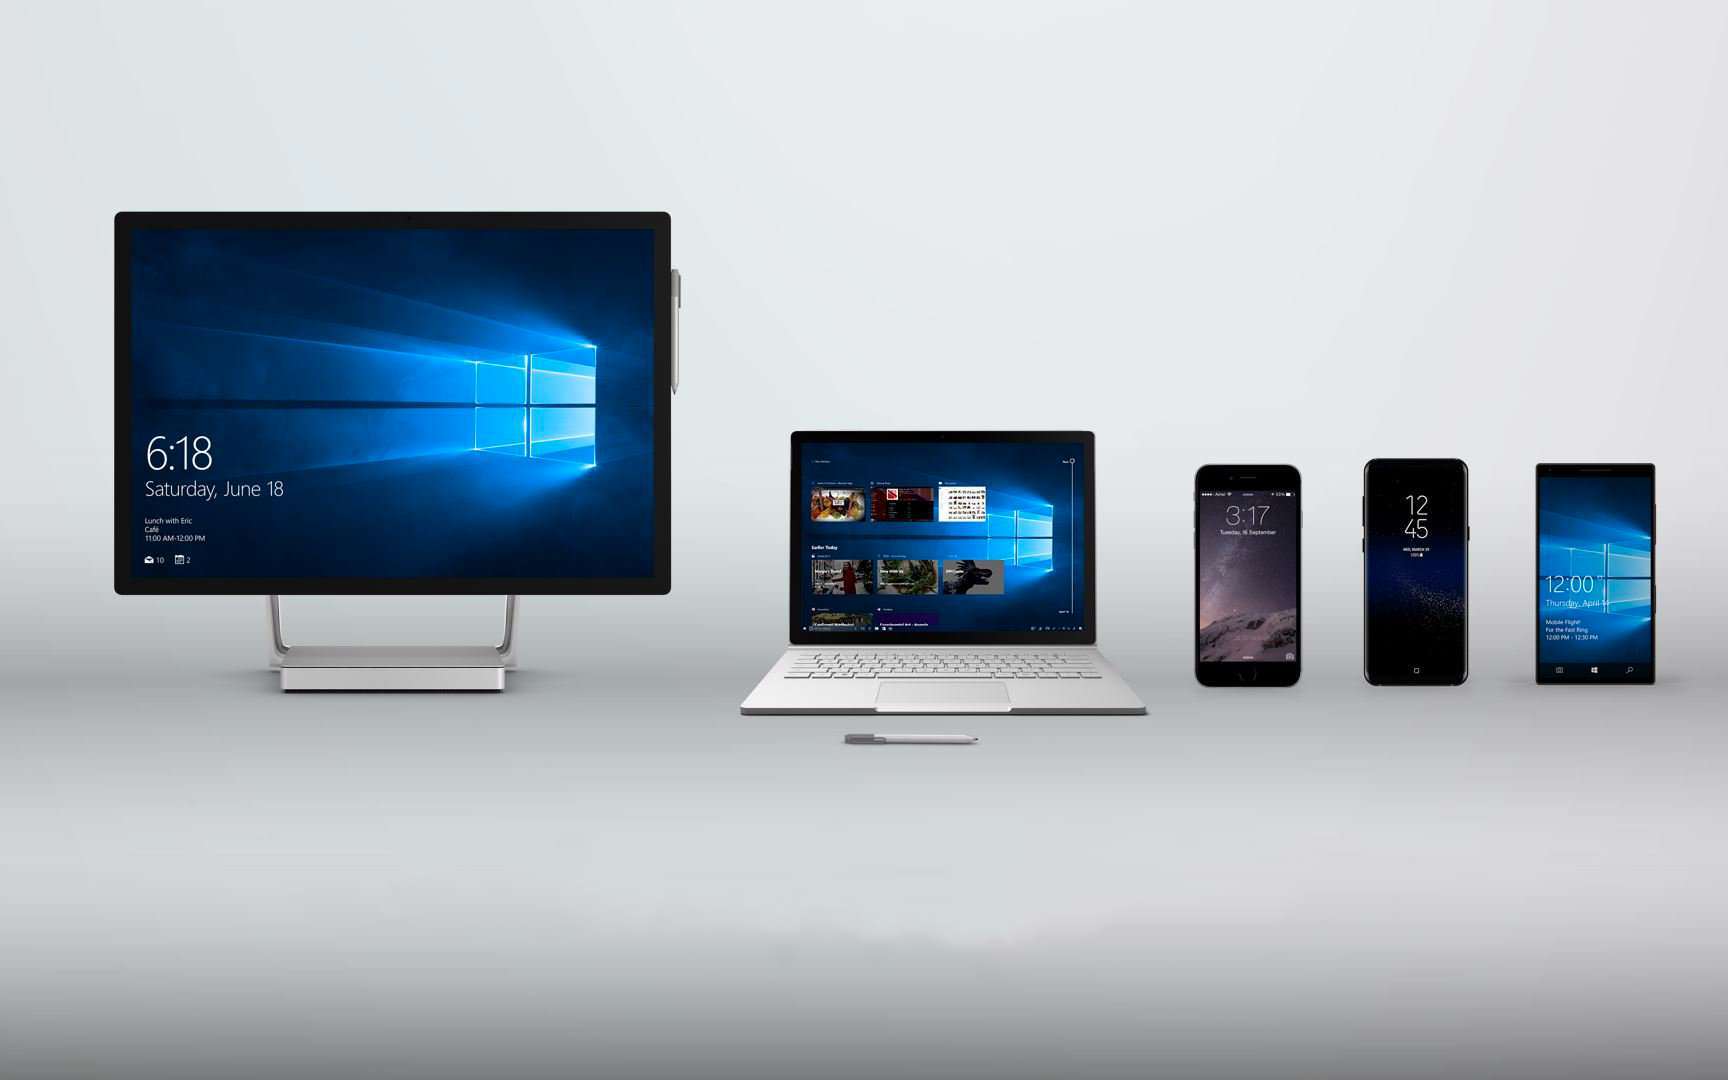 La dernière version de Windows 10 permet de synchroniser son PC à son smartphone.